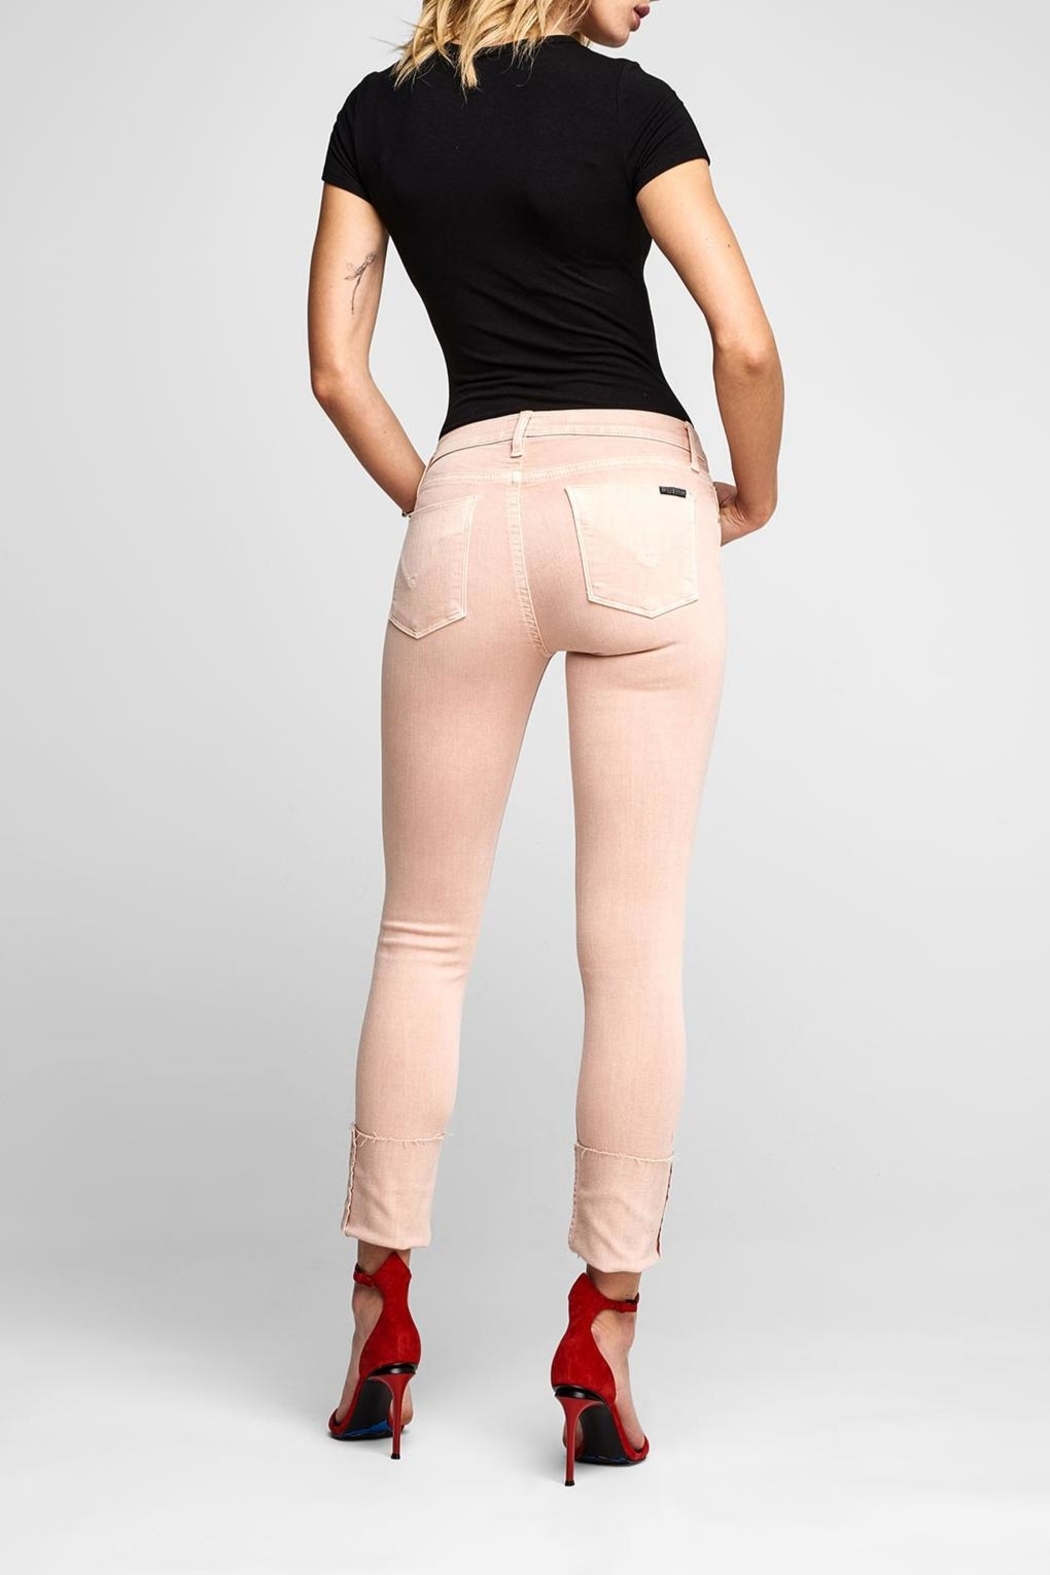 Hudson Jeans Tally Crop Worn-Rosewater - Side Cropped Image